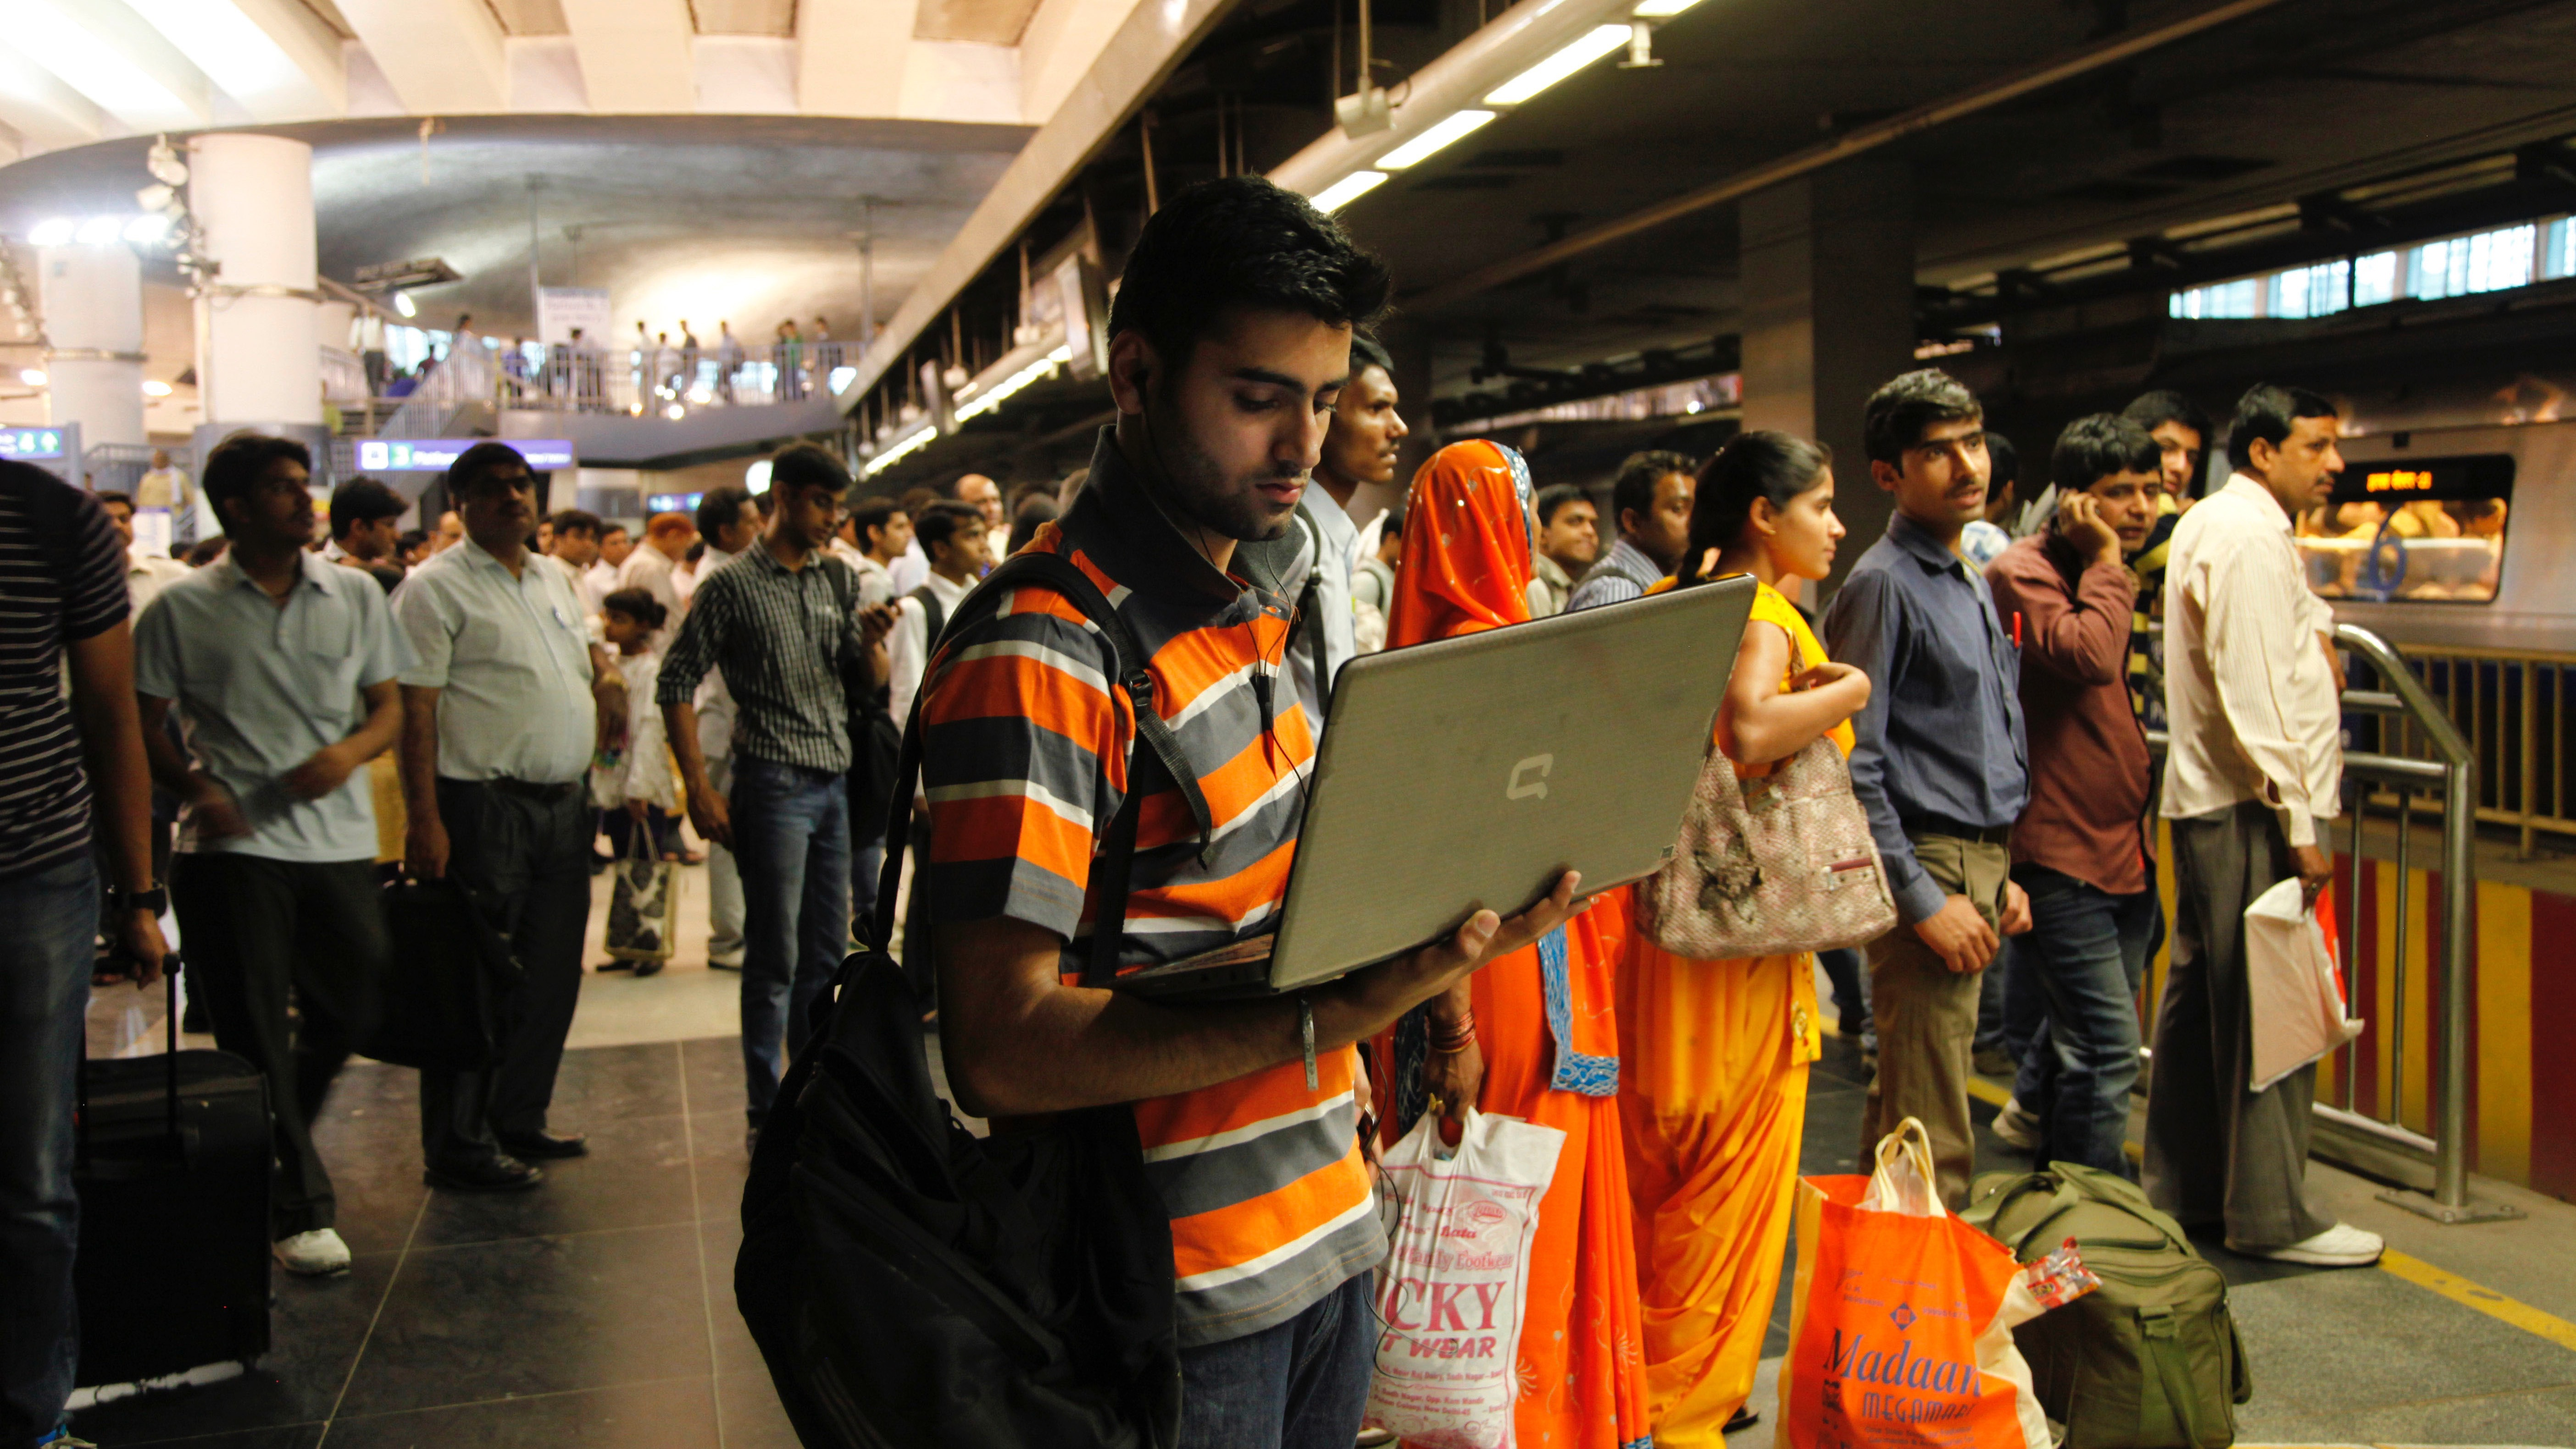 An Indian man works on his laptop as he stands at a metro station in New Delhi, India, Friday, April 4, 2014. In a few decades, India has gone from a country mostly concerned with securing food, clothing and shelter to one in which the priorities are now jobs, electricity and infrastructure. Those gaps are even more visible with the technology explosion. While ten years ago most people had never seen a television or a mobile phone, today there are more than 200 TV channels, with some 40 devoted to news alone, while three in four Indians has a cell phone. (AP Photo/Tsering Topgyal)